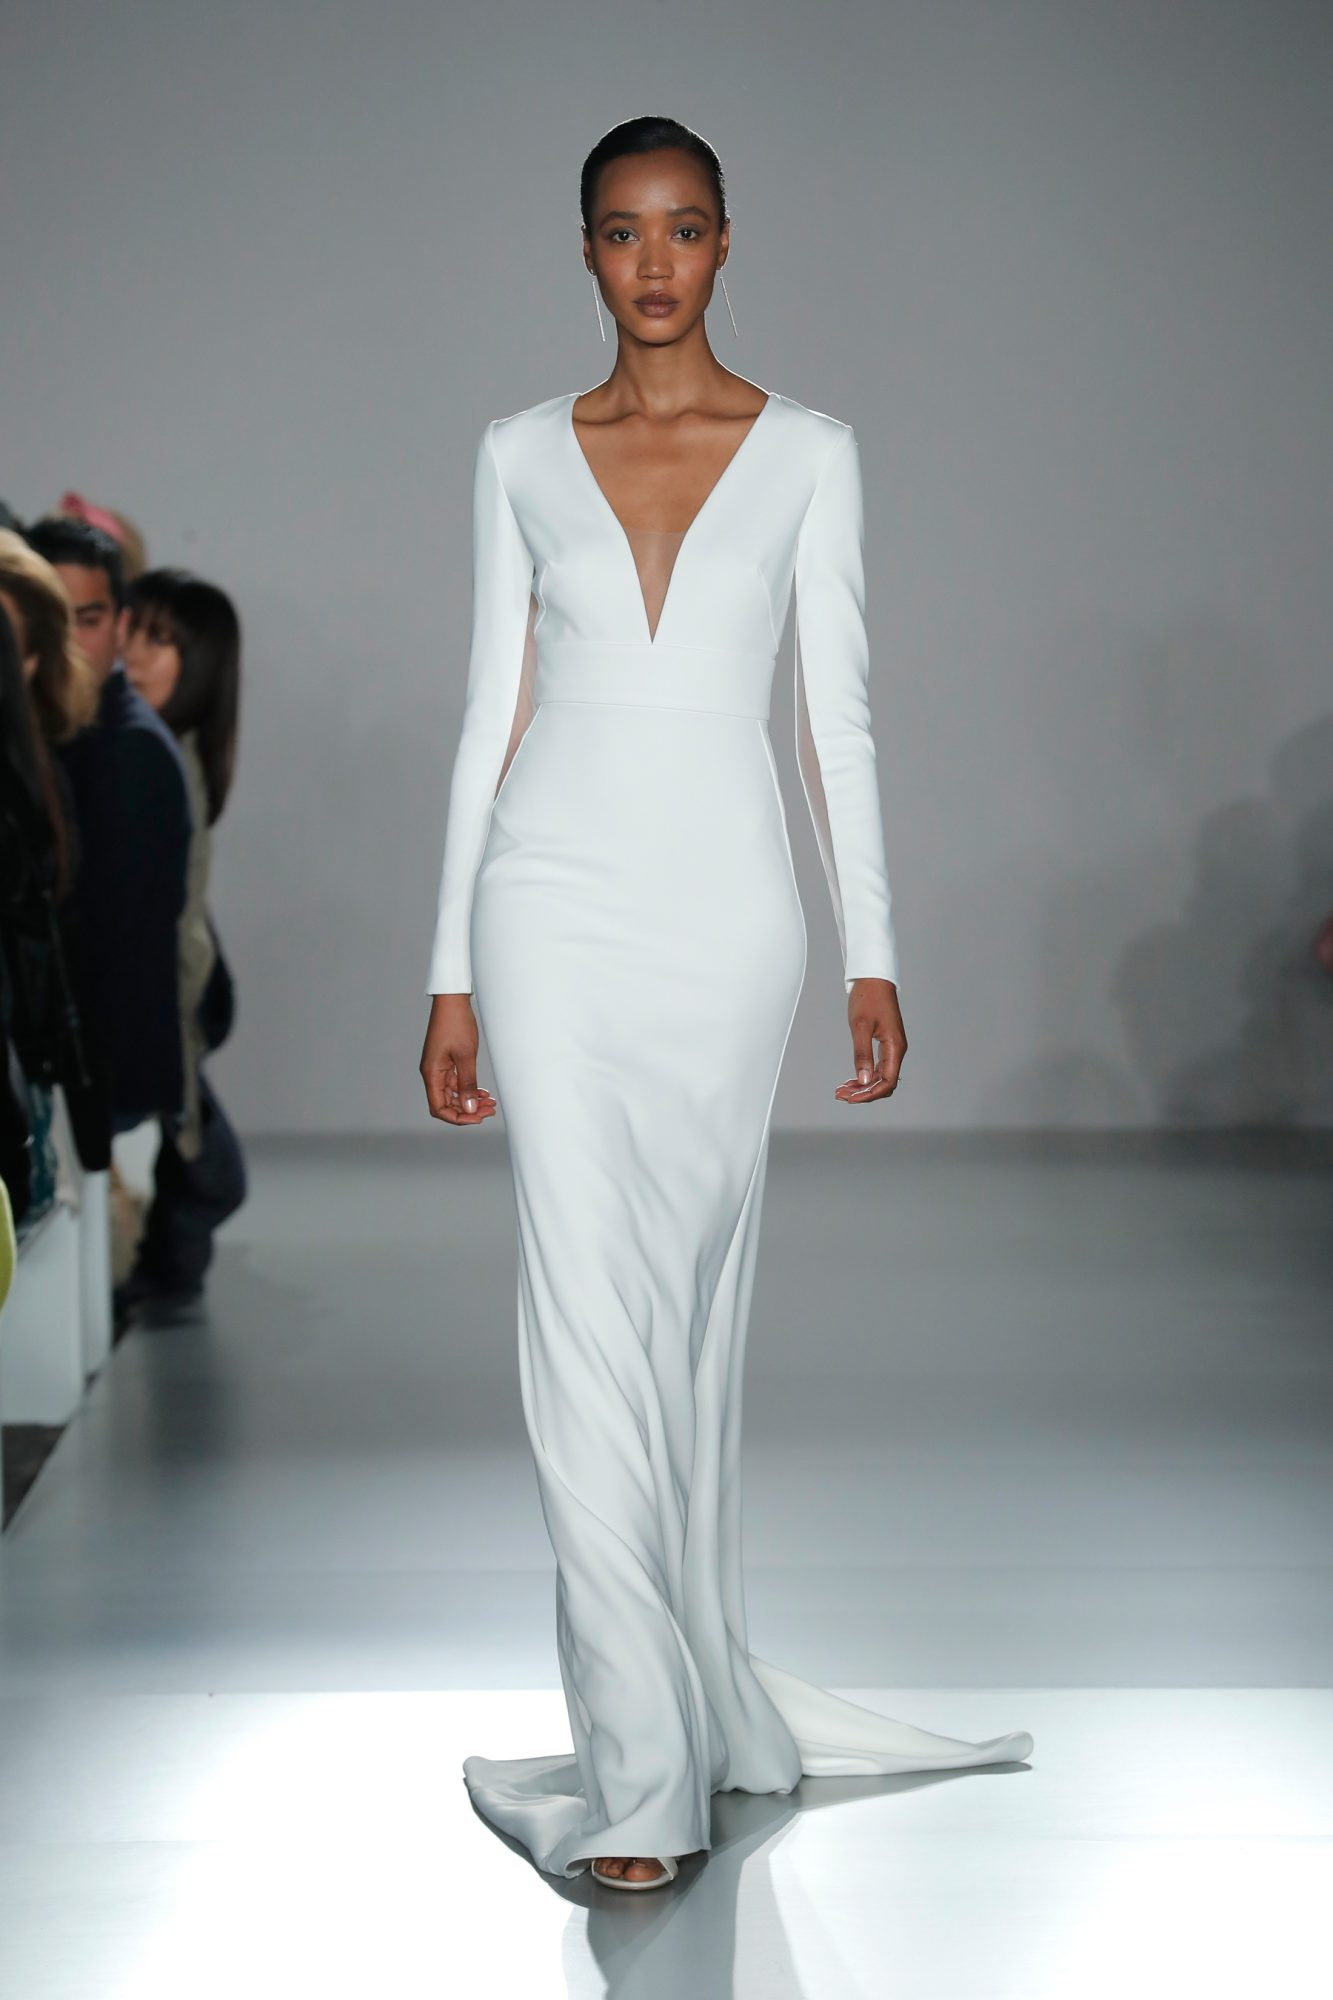 nouvelle amsale long sleeve v-neck sheath wedding dress spring 2020